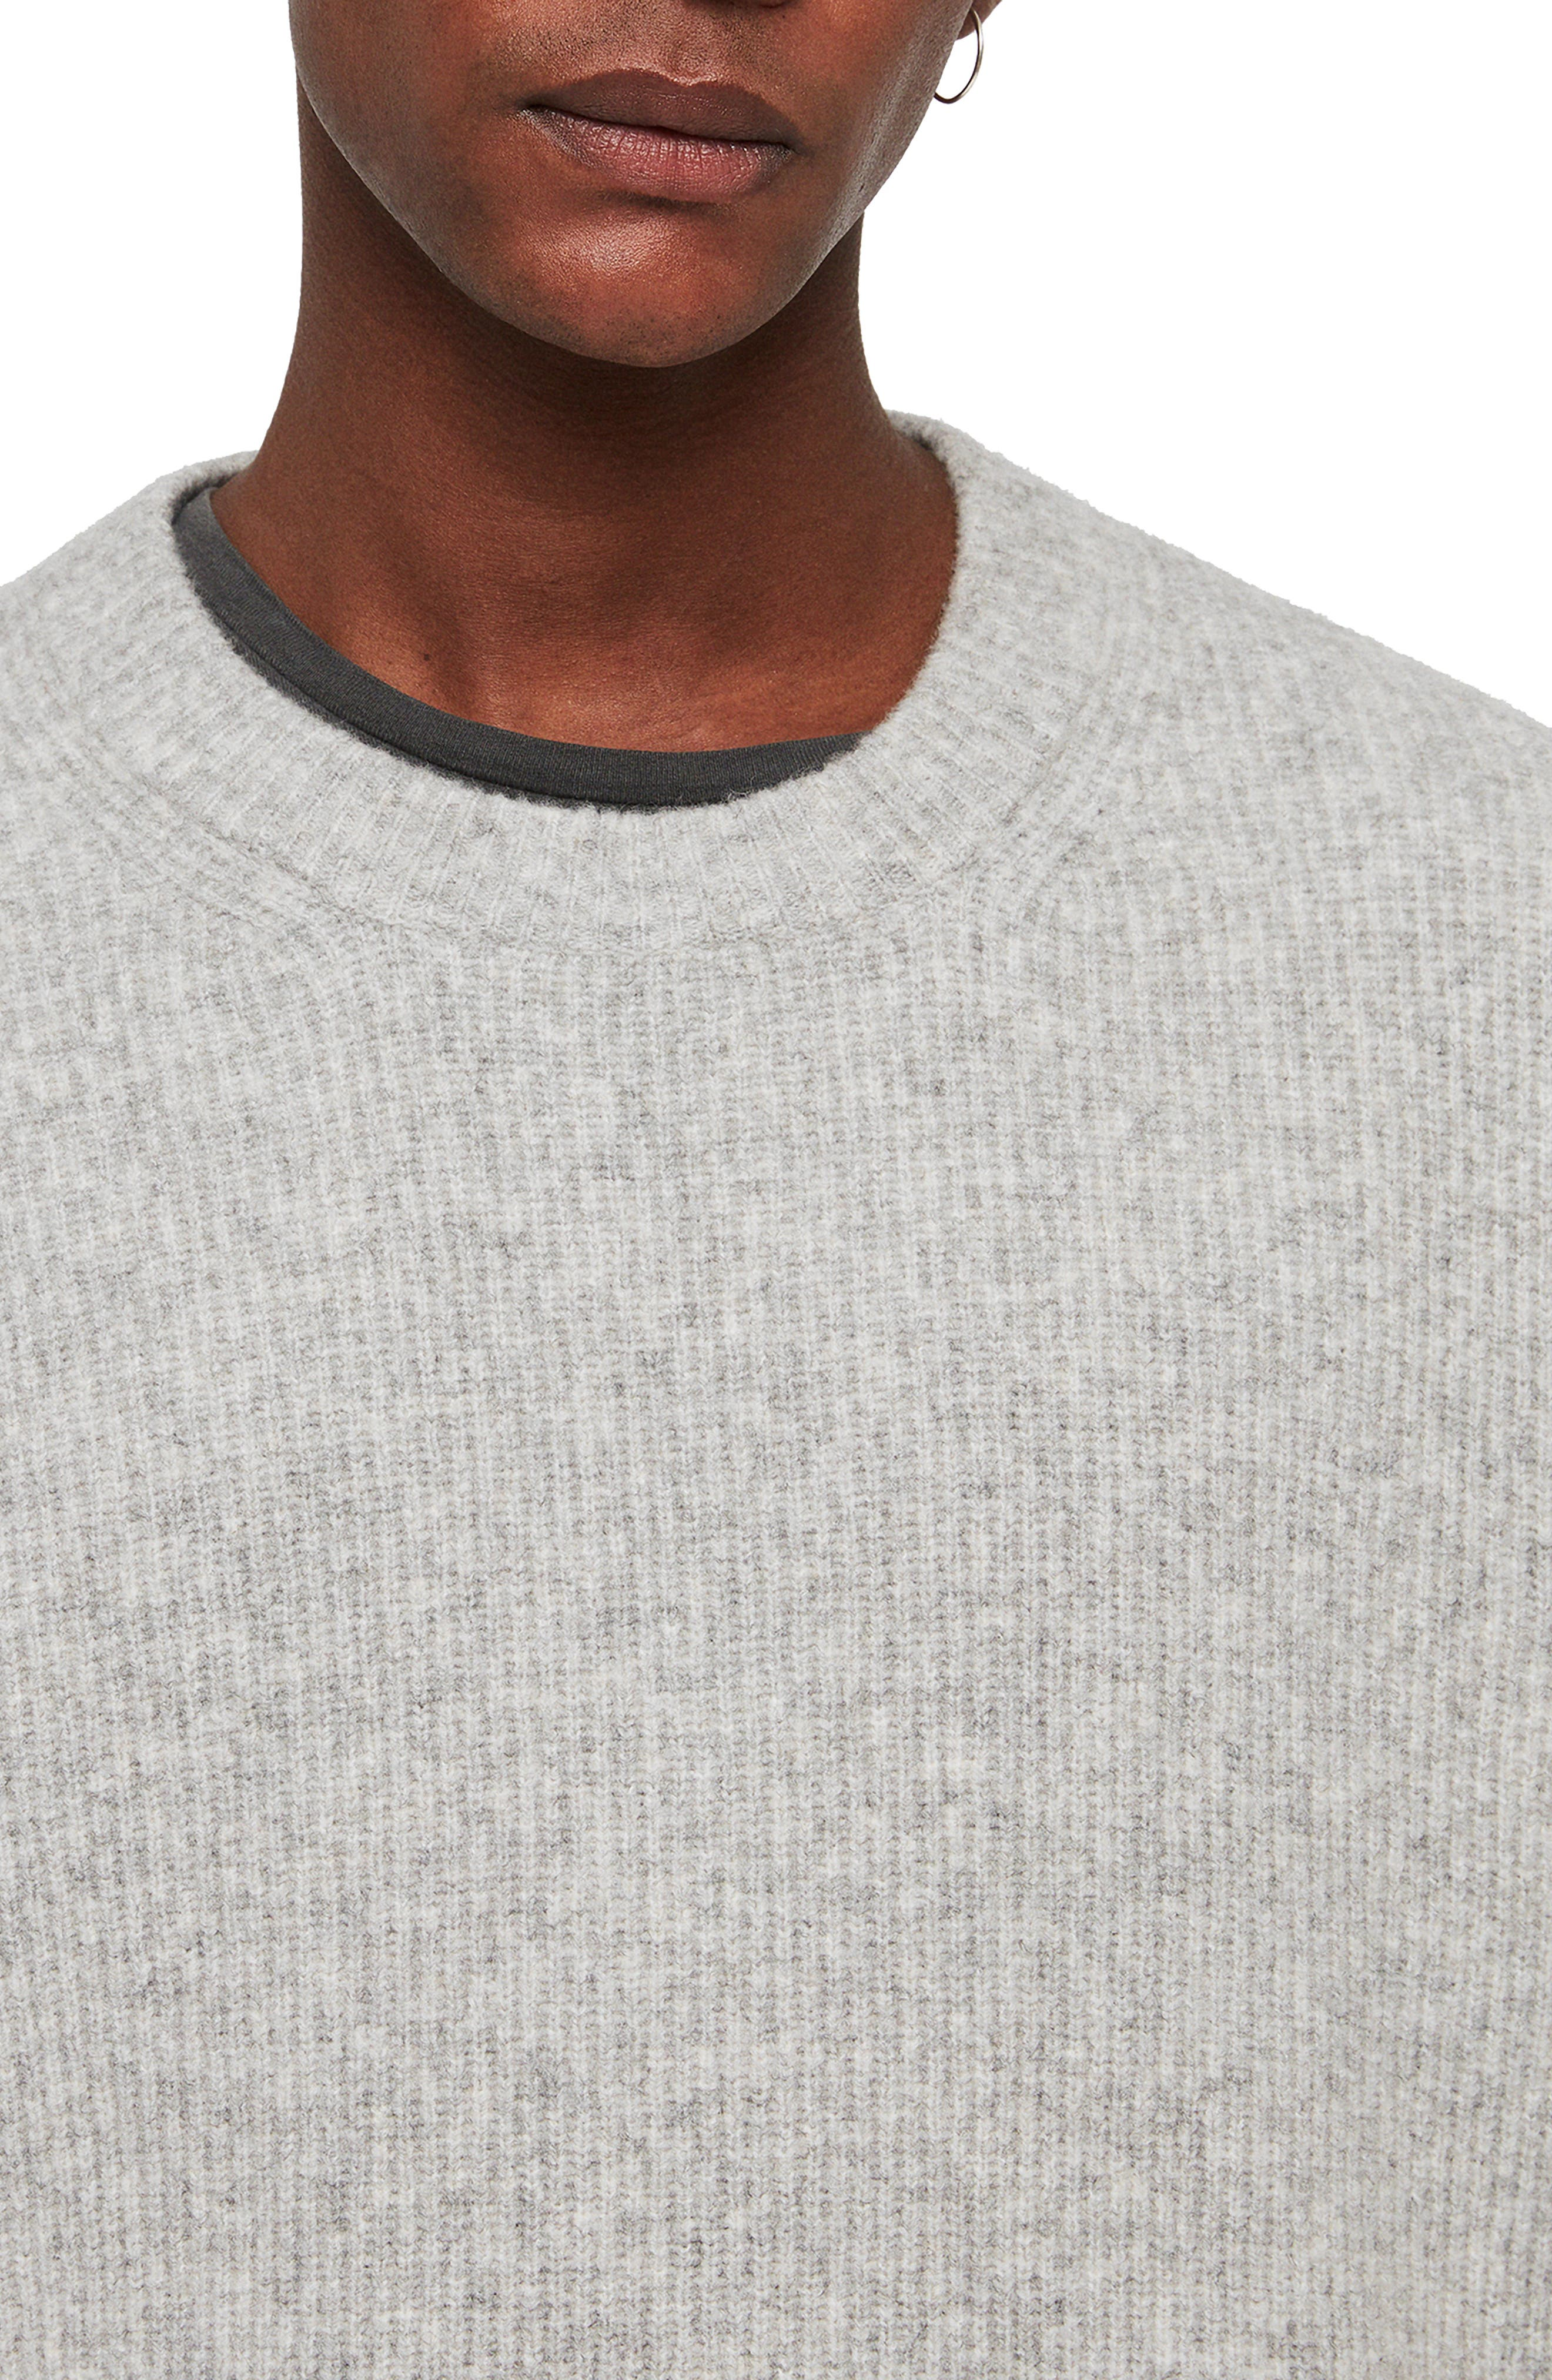 Path Wool Blend Sweater,                             Alternate thumbnail 5, color,                             LIGHT GREY MARL